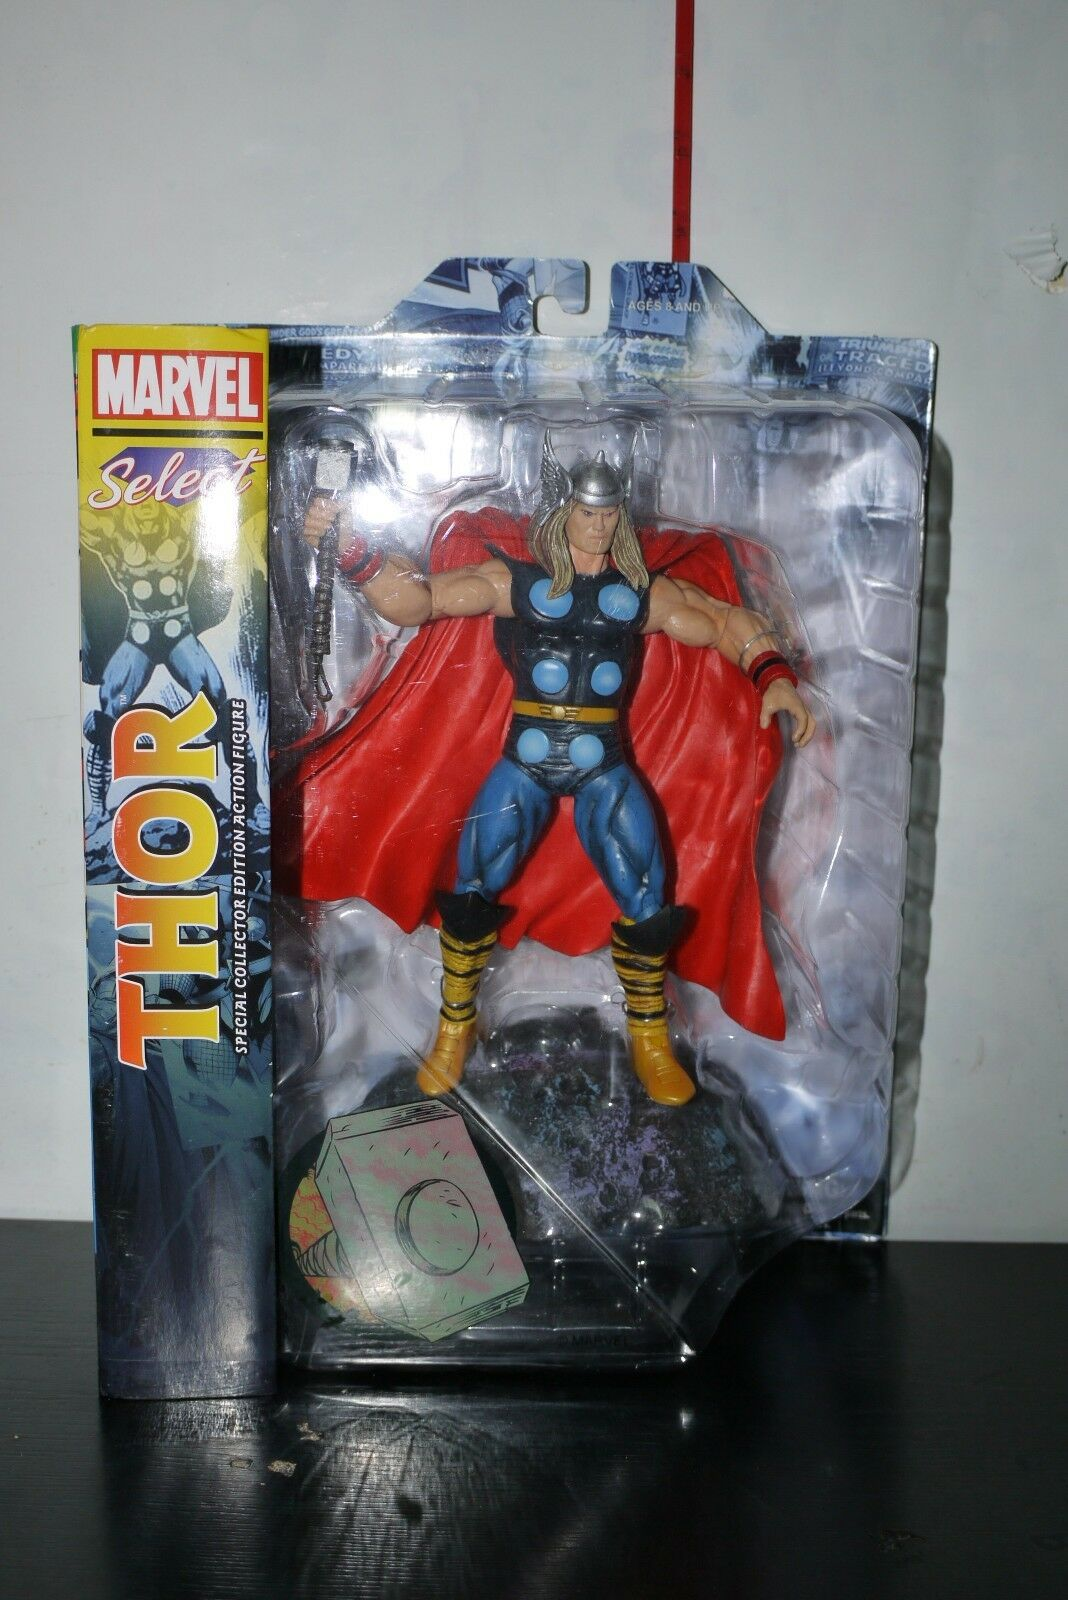 MARVEL SELECT CLASSIC THOR THOR THOR ACTION FIGURE MIB 156bcd